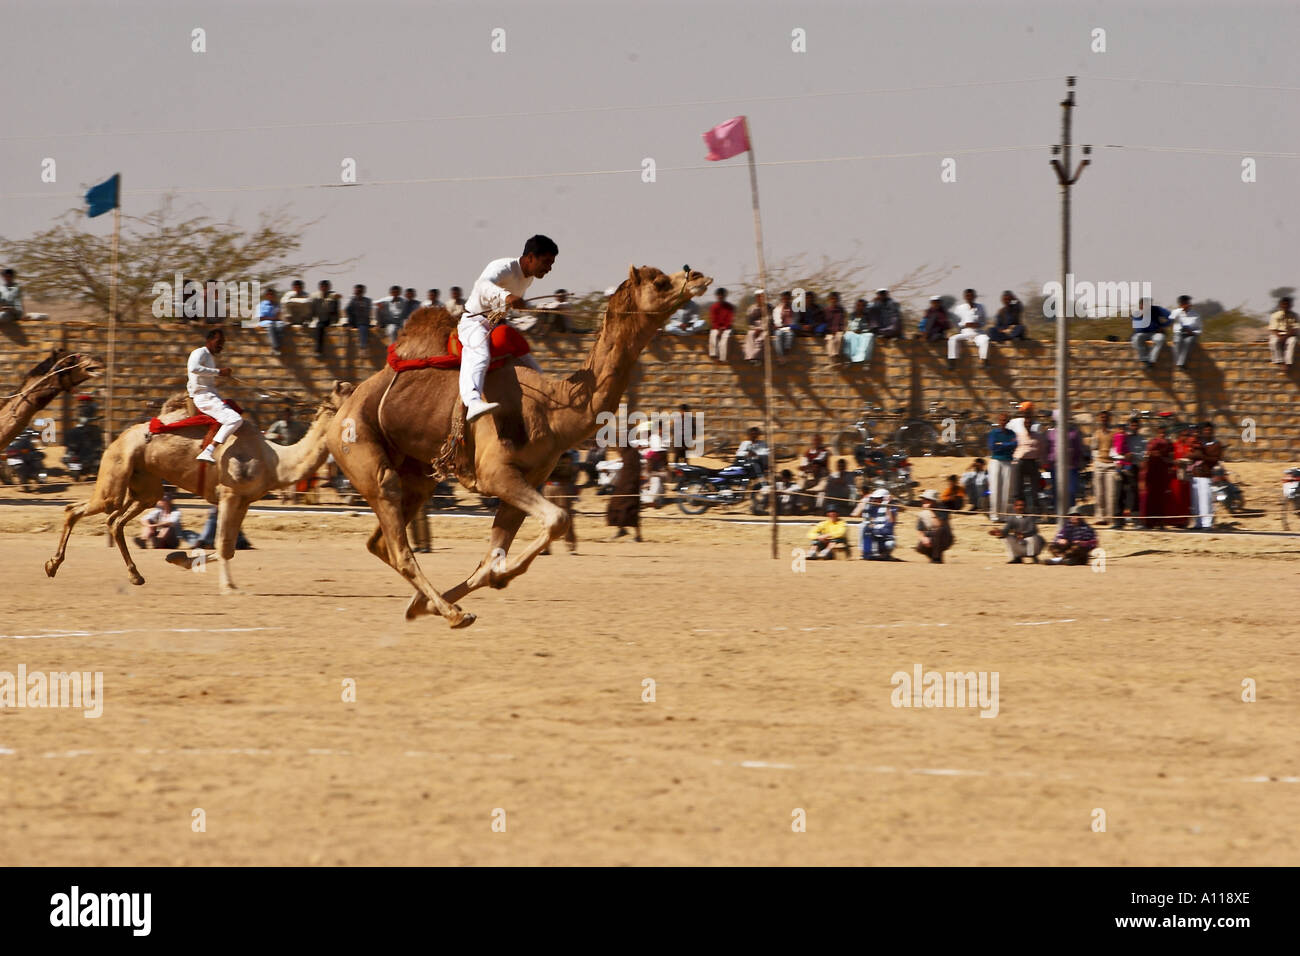 Camel Running Camel Race Track Stock Photos & Camel Running